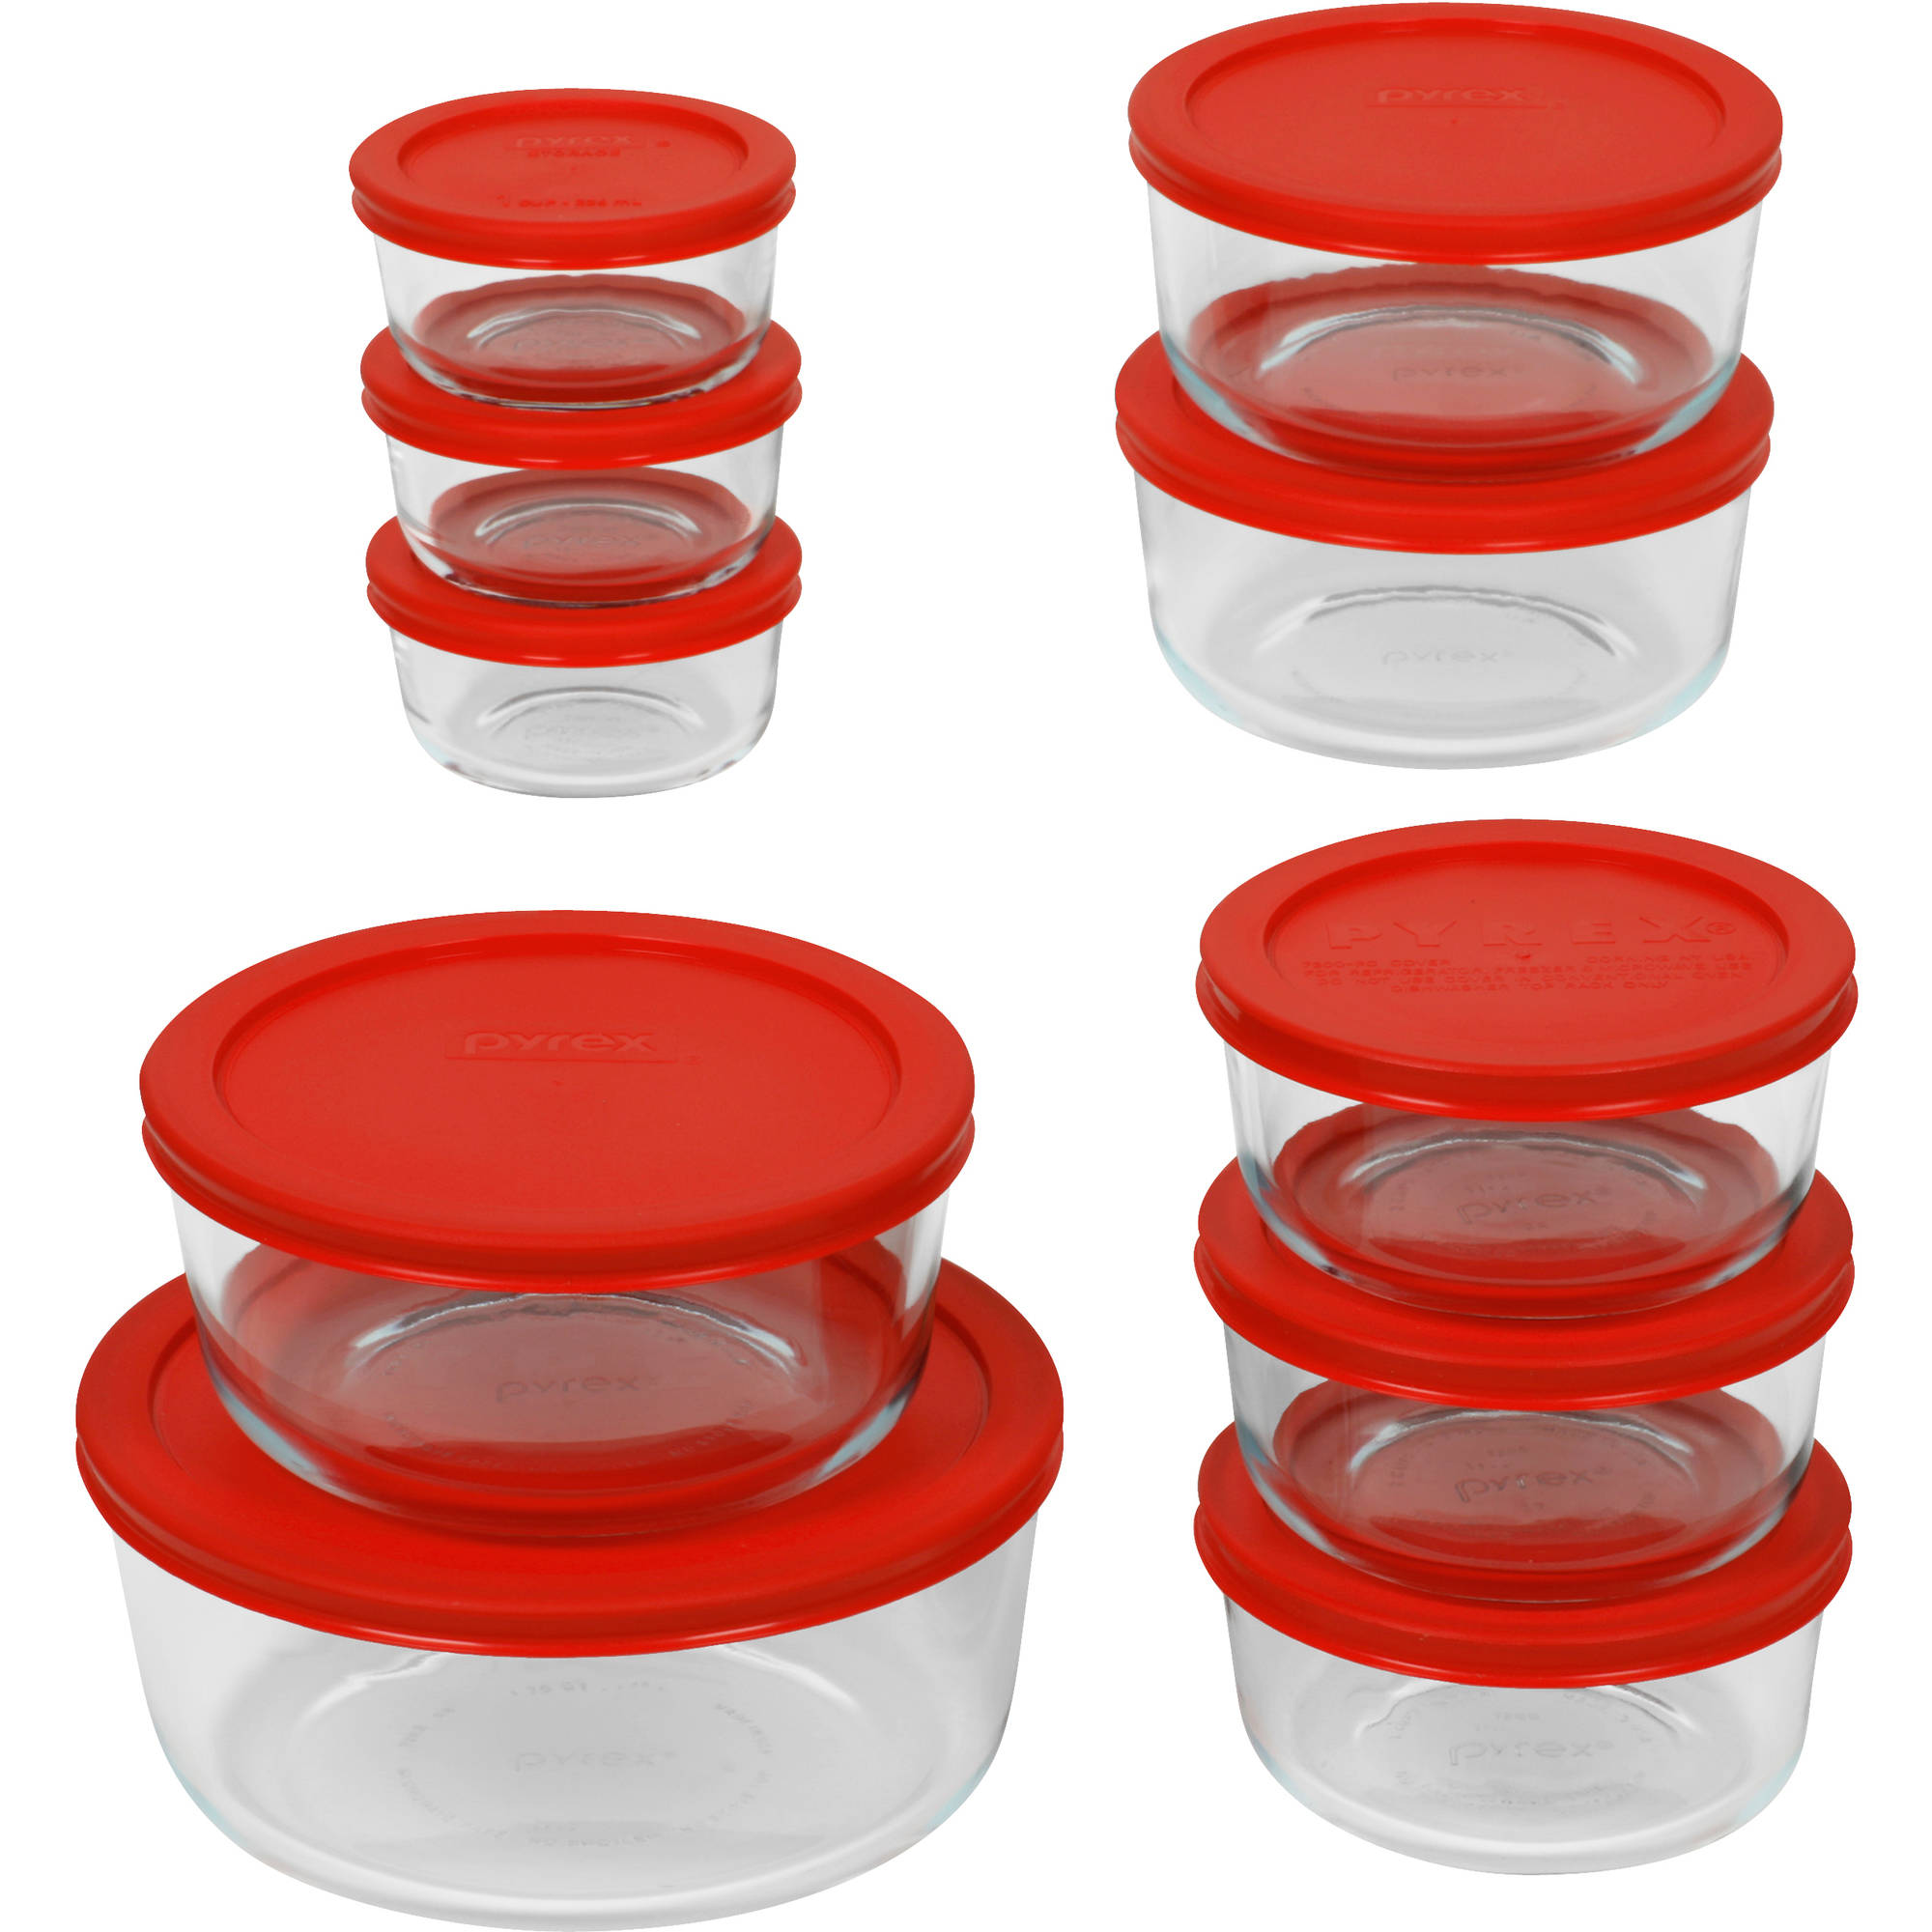 Pyrex 20-pc Storage Plus Set. Glass Food Storage Bakeware Red - Walmart .com  sc 1 st  Walmart & Pyrex 20-pc Storage Plus Set. Glass Food Storage Bakeware Red ...